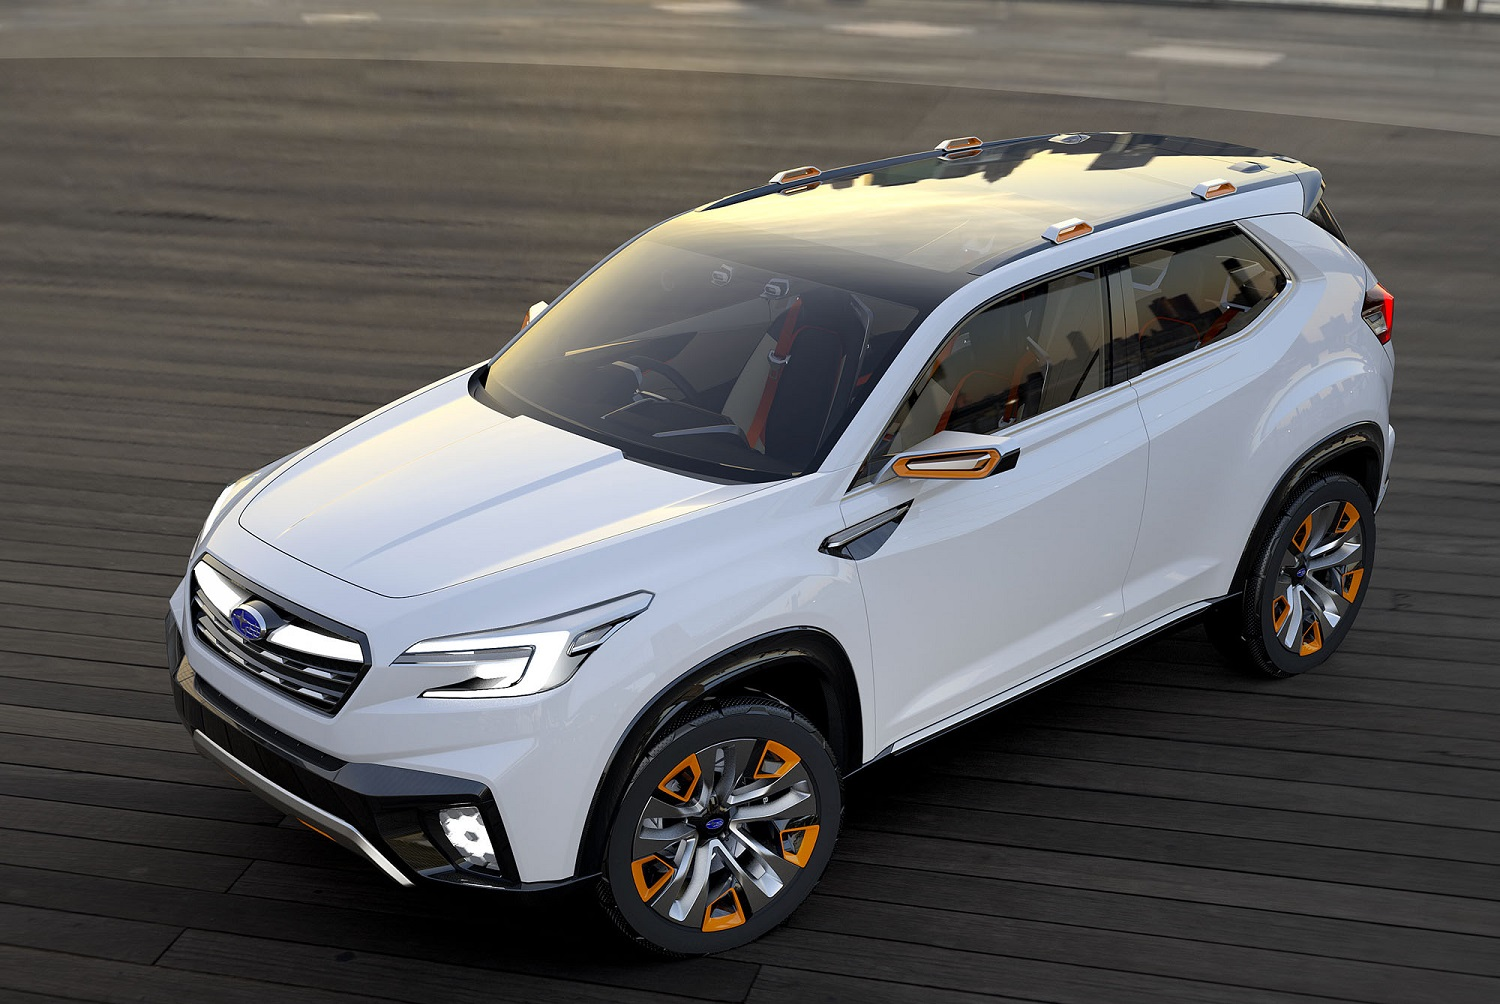 Subaru is going green, and we're not talking about paint